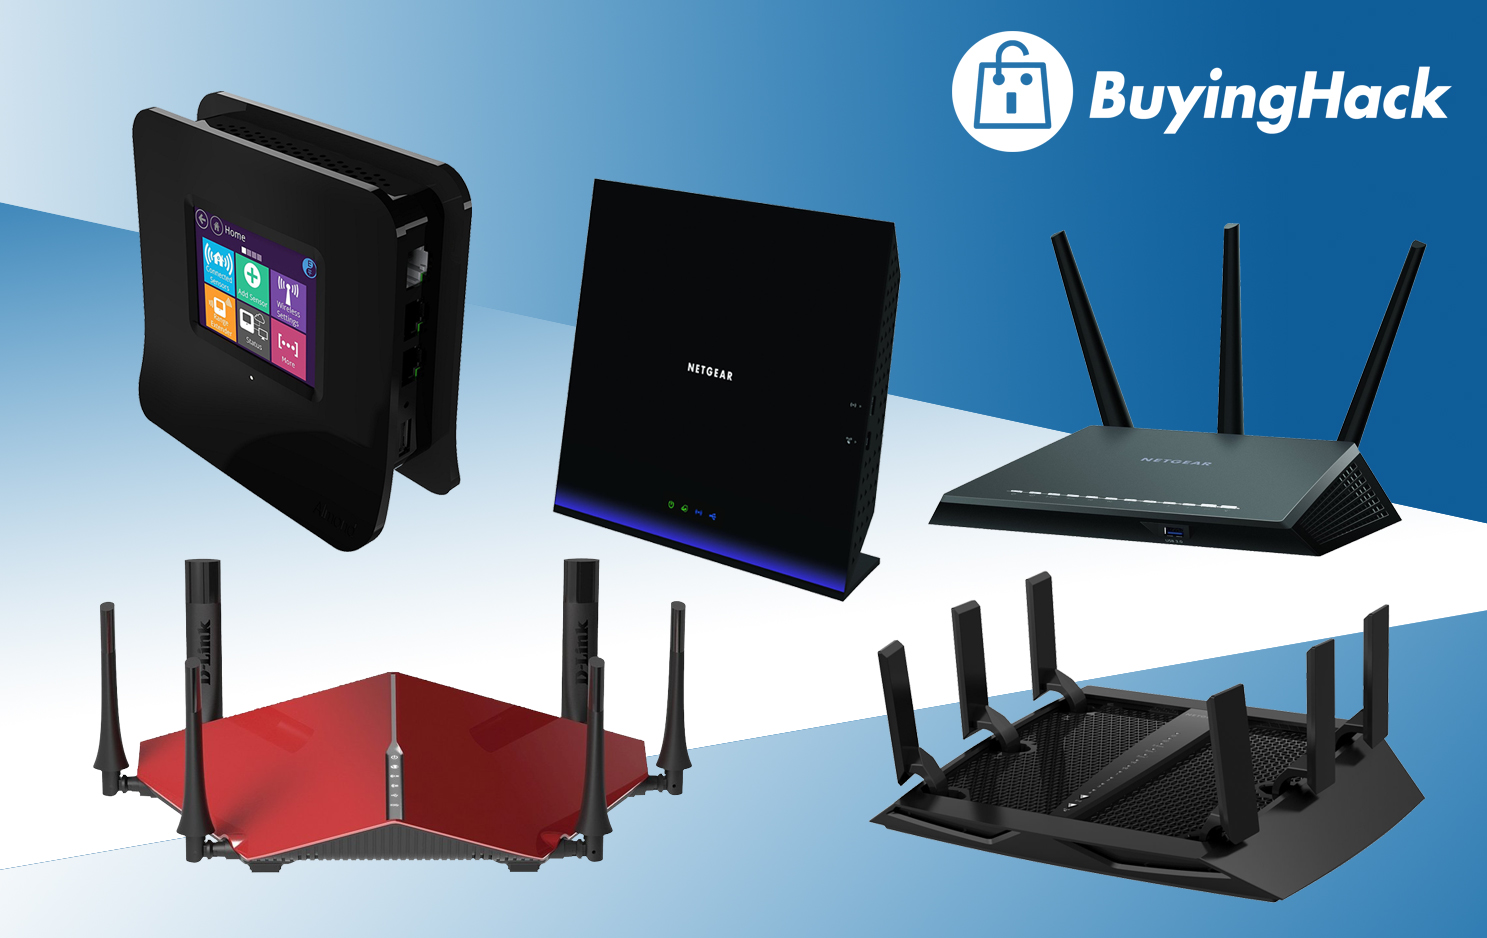 Top 15 Wireless Routers In 2018 Review Asus Rt Ac3200 Tri Band Gigabit Router Ac 3200 Mbps